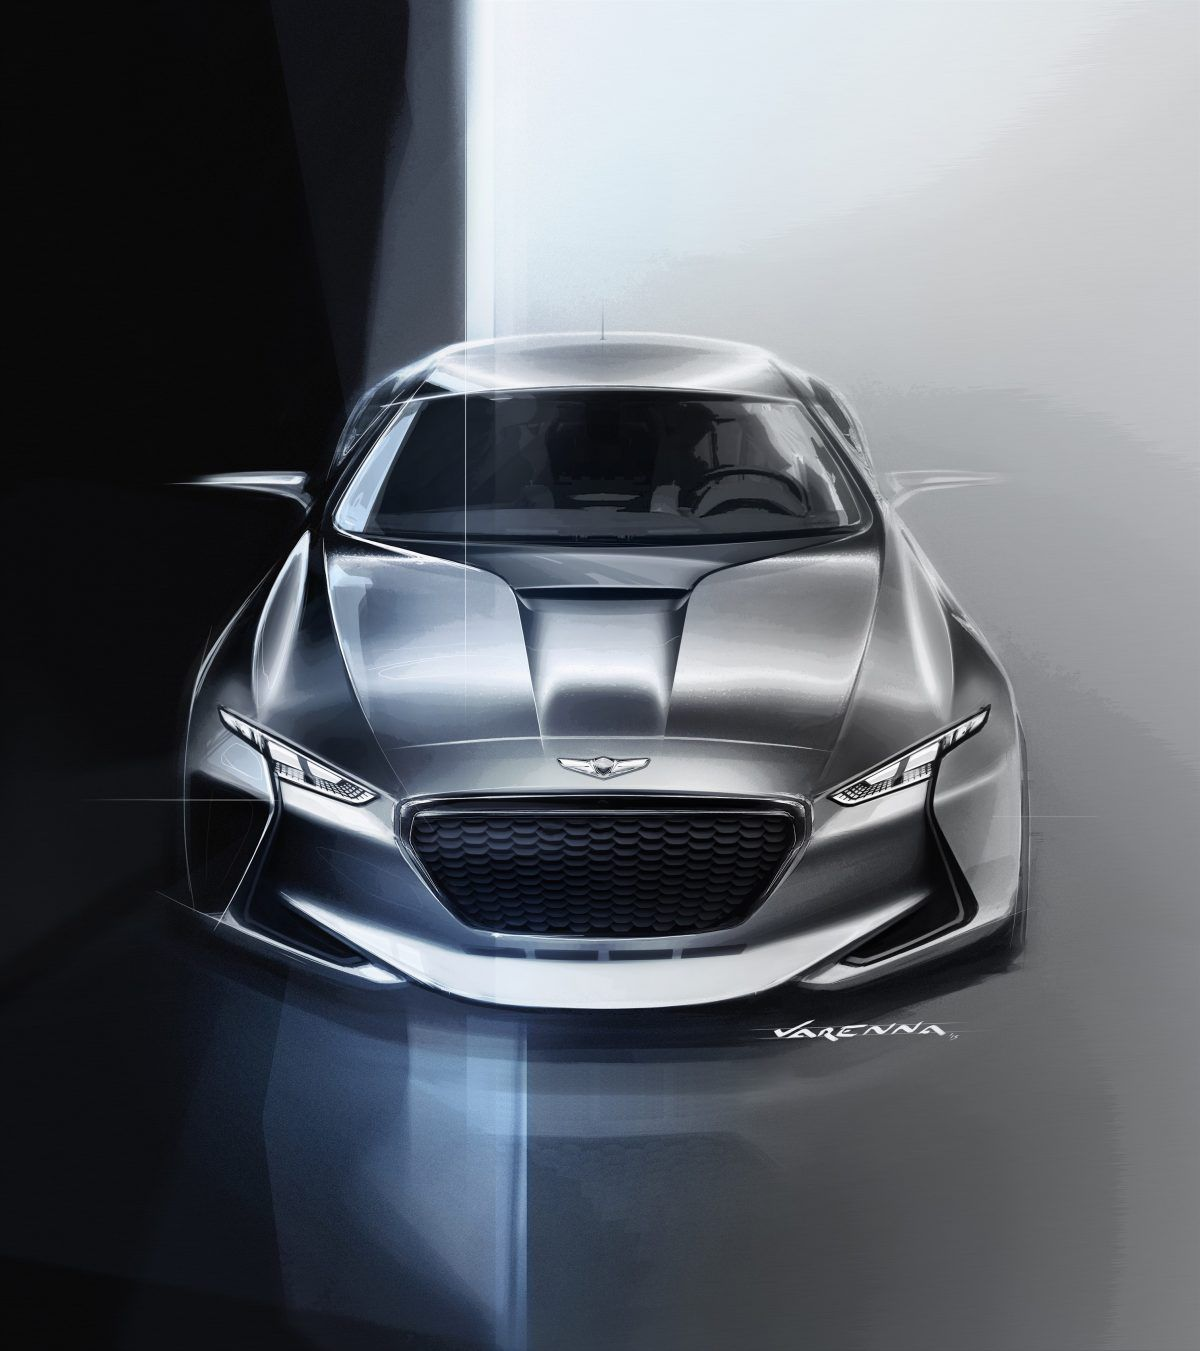 The Story Behind Genesis The New Global Luxury Car Brand With